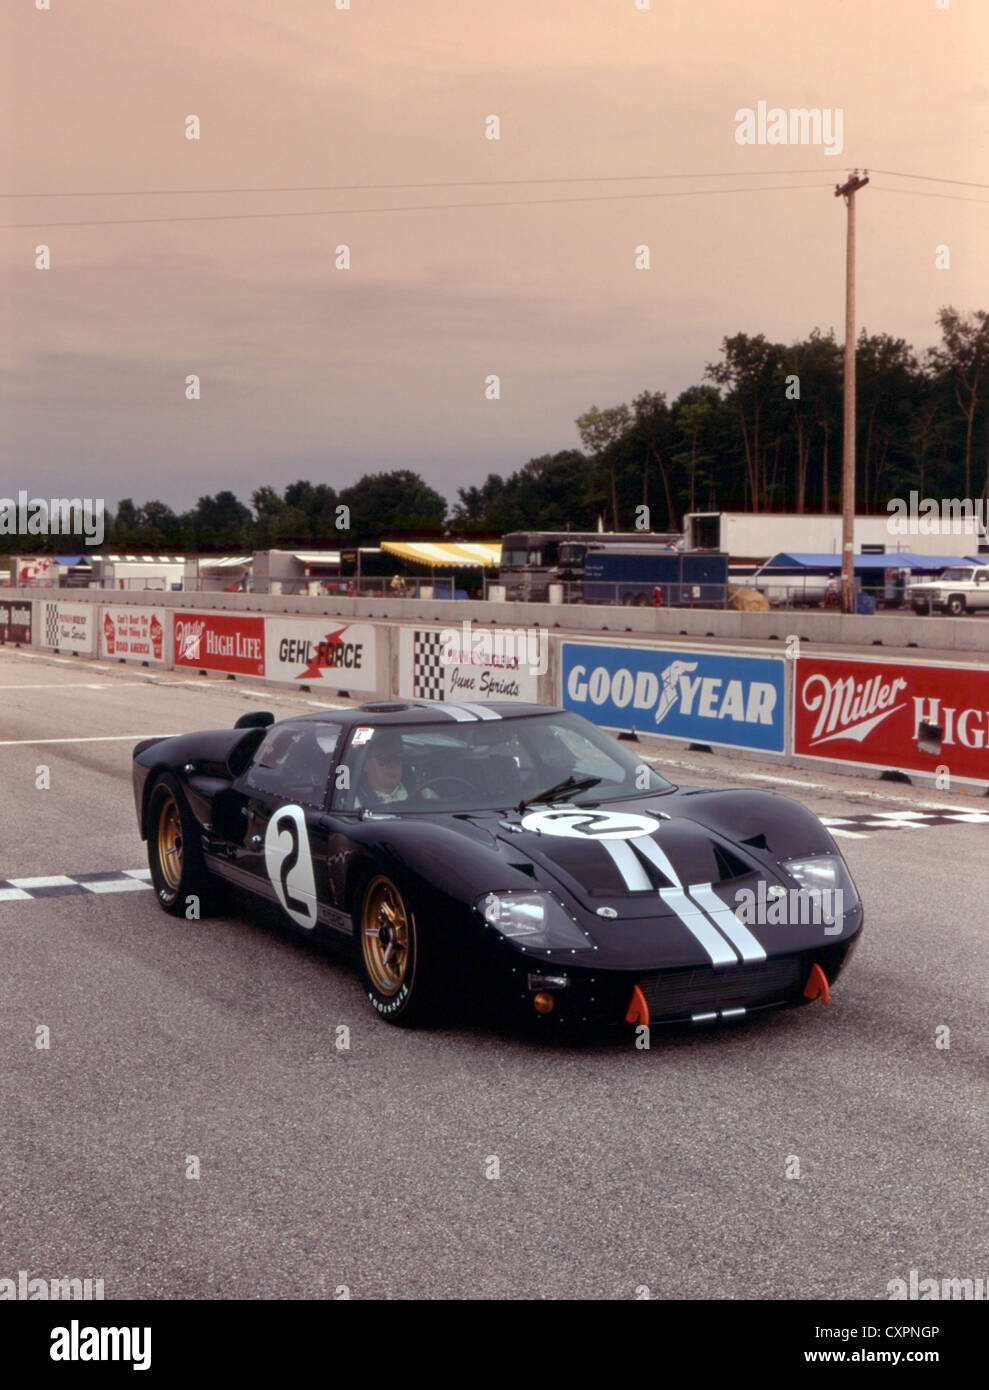 ford gt40 mkii at road america elkhart lake race trackwinner 1966 le mans 24 hour race